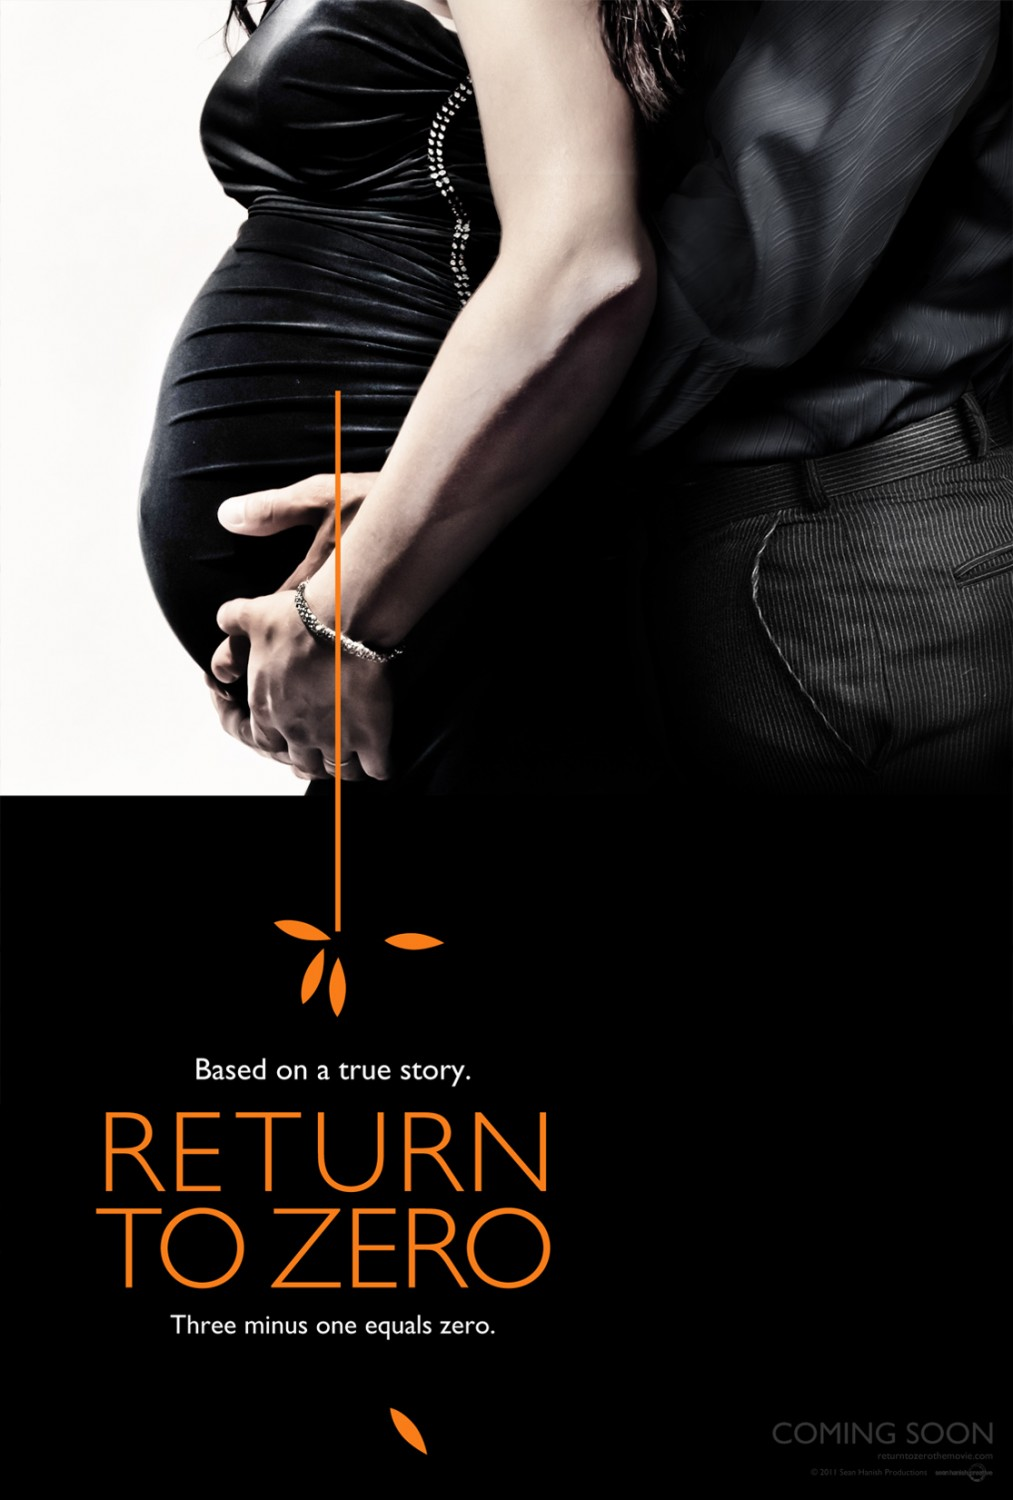 Extra Large Movie Poster Image for Return to Zero